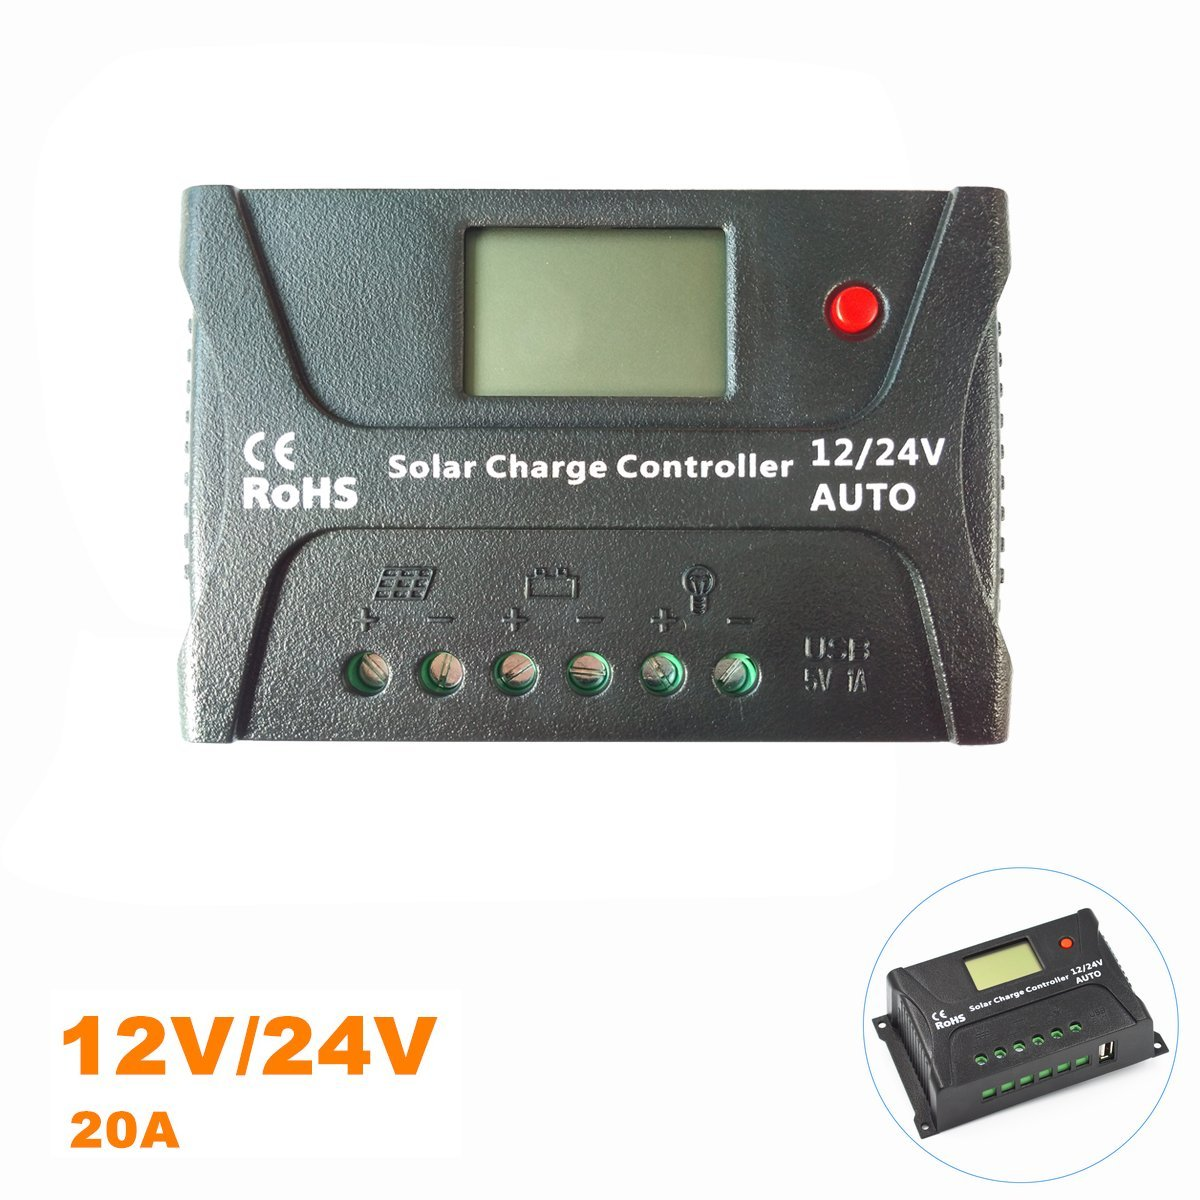 20 Amp PWM Solar Panel Charge Controller 12V 24V Voltage Regulator 20A By Easun Power, Solar Charge Controller Waterproof USB Port LCD Display overload Protection Temperature (20A)